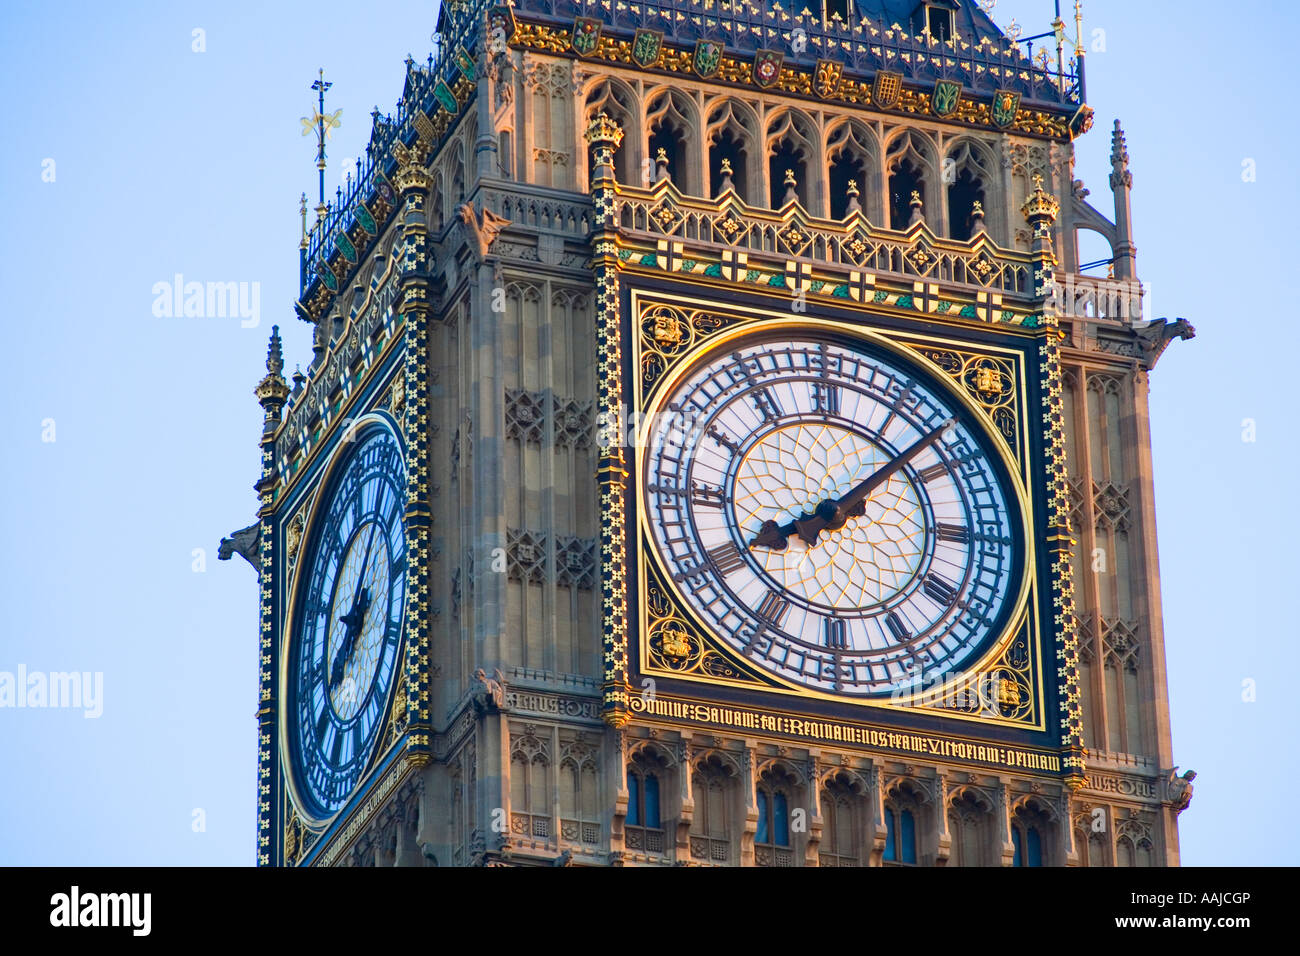 Close up view of Big Ben clock face summer evening London 08:12 architect Charles Barry - Stock Image